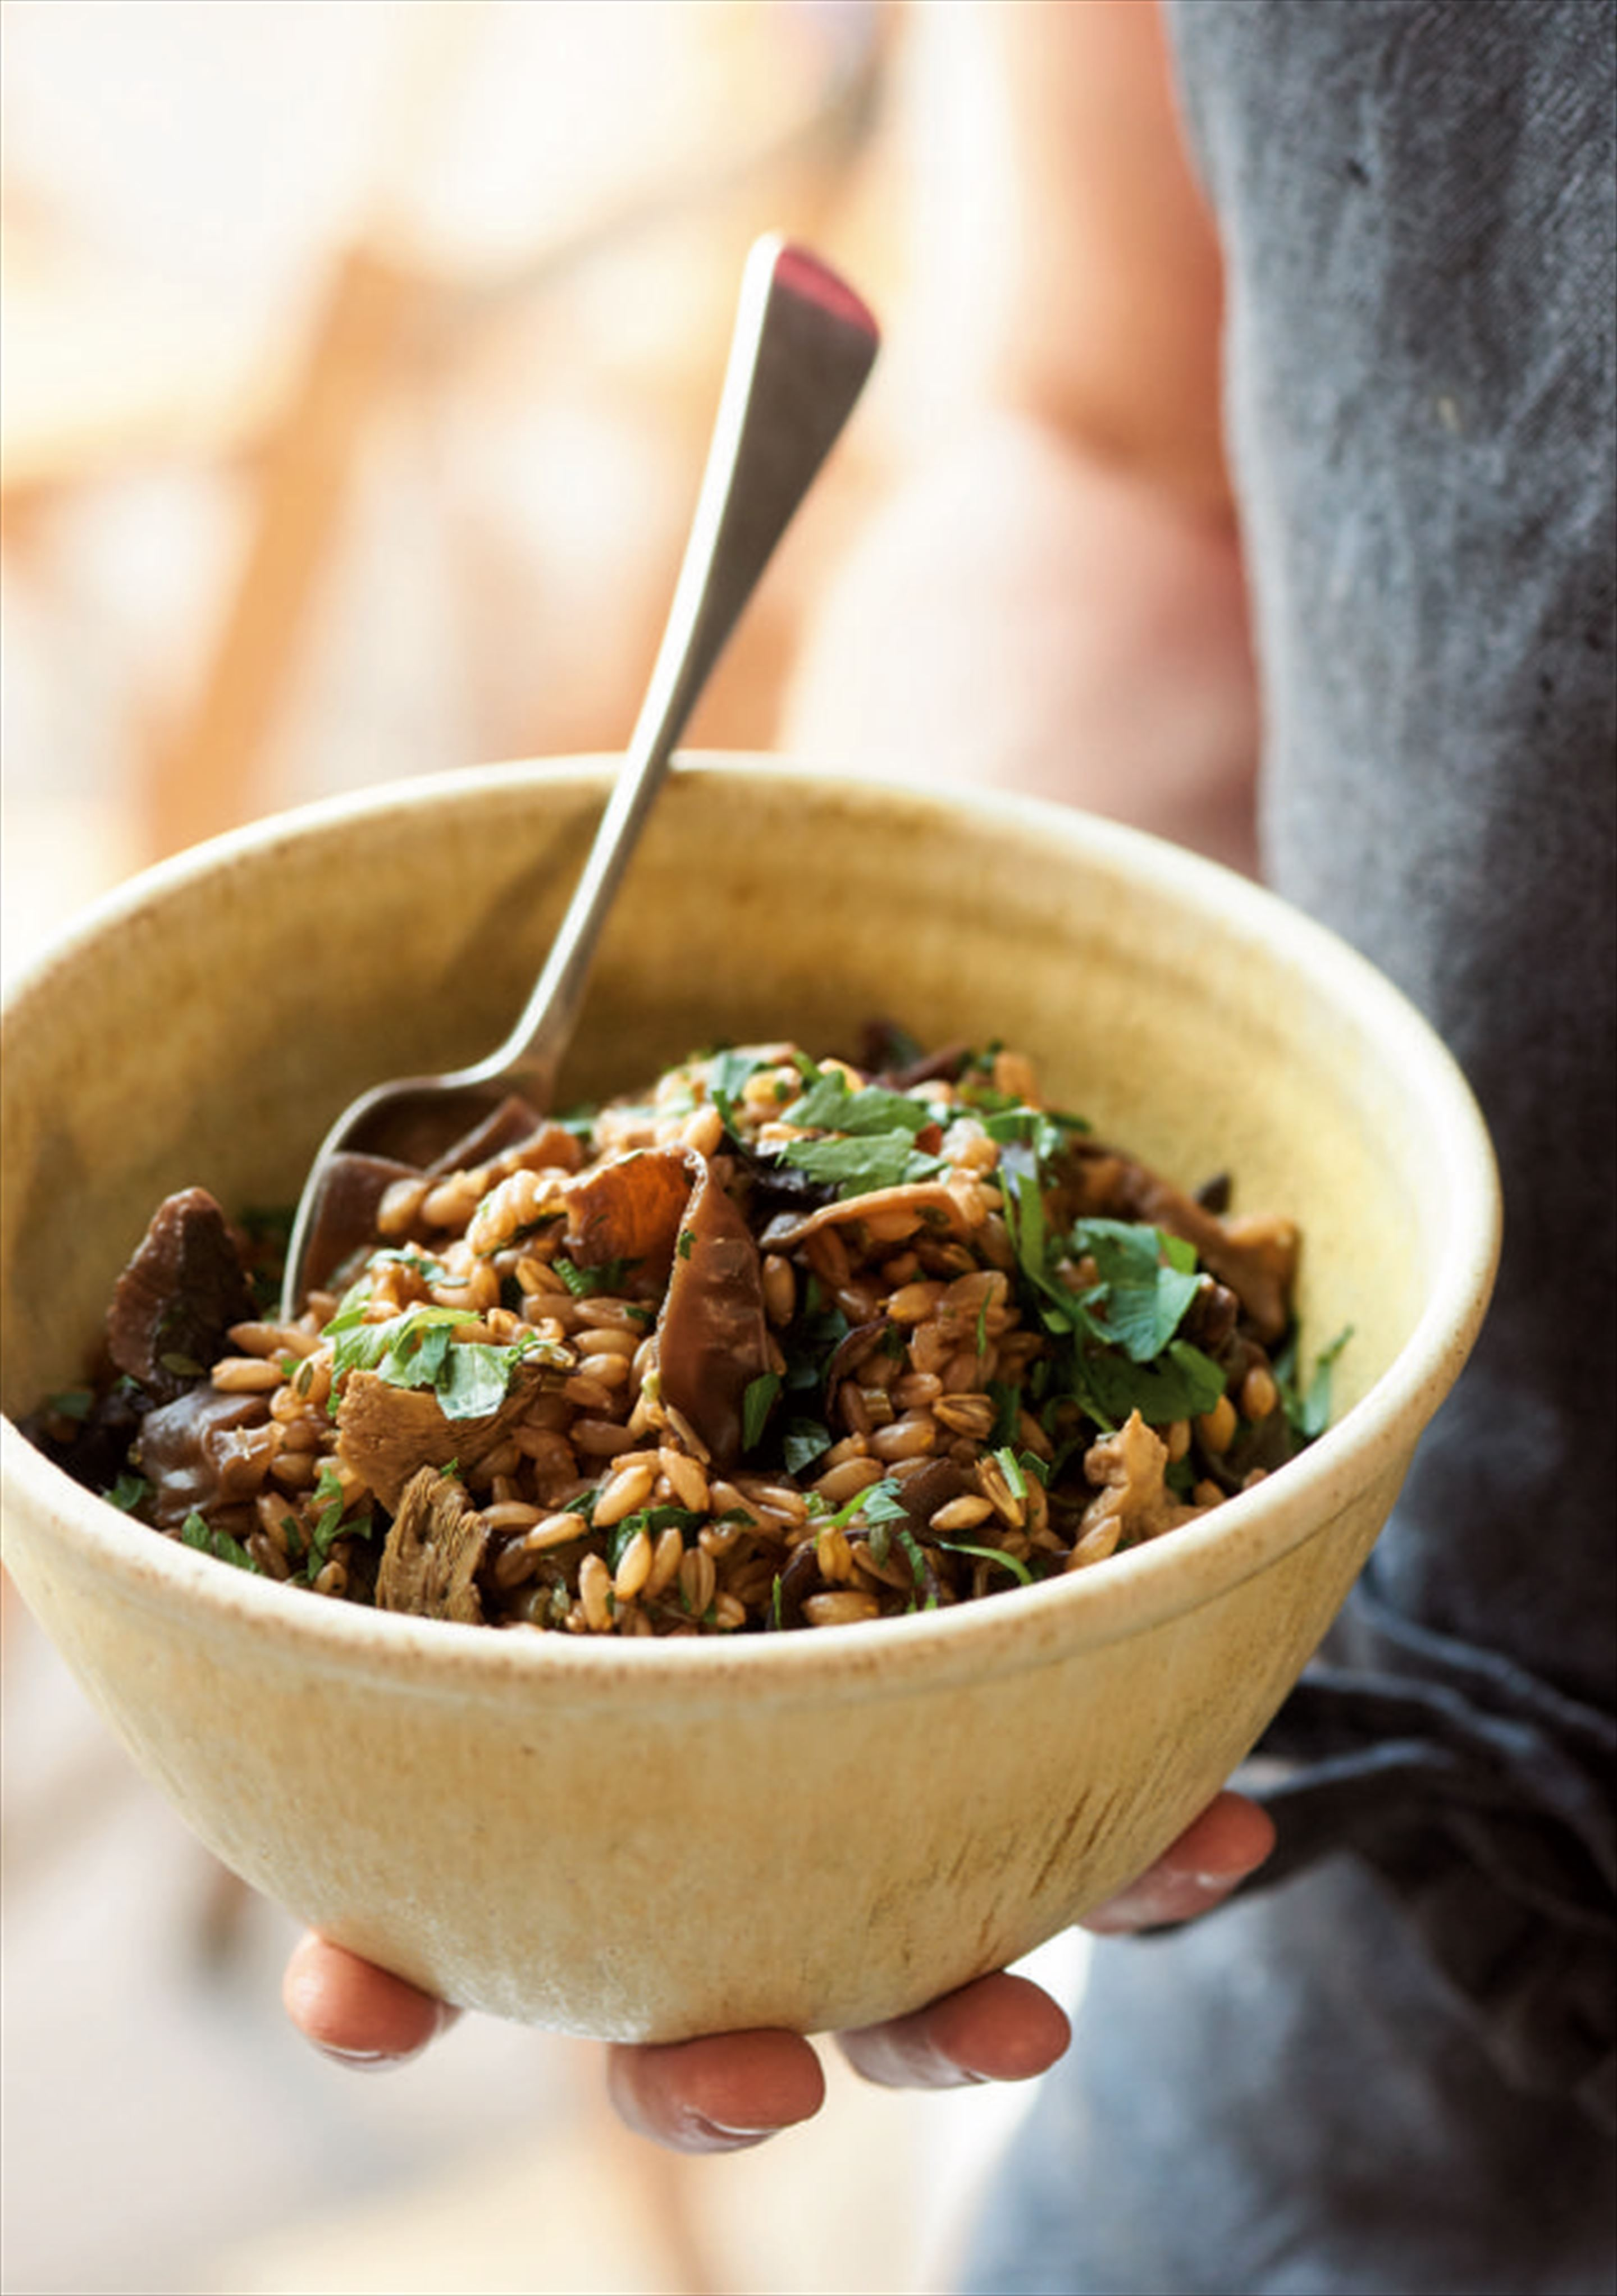 Spelt grains with wild mushrooms